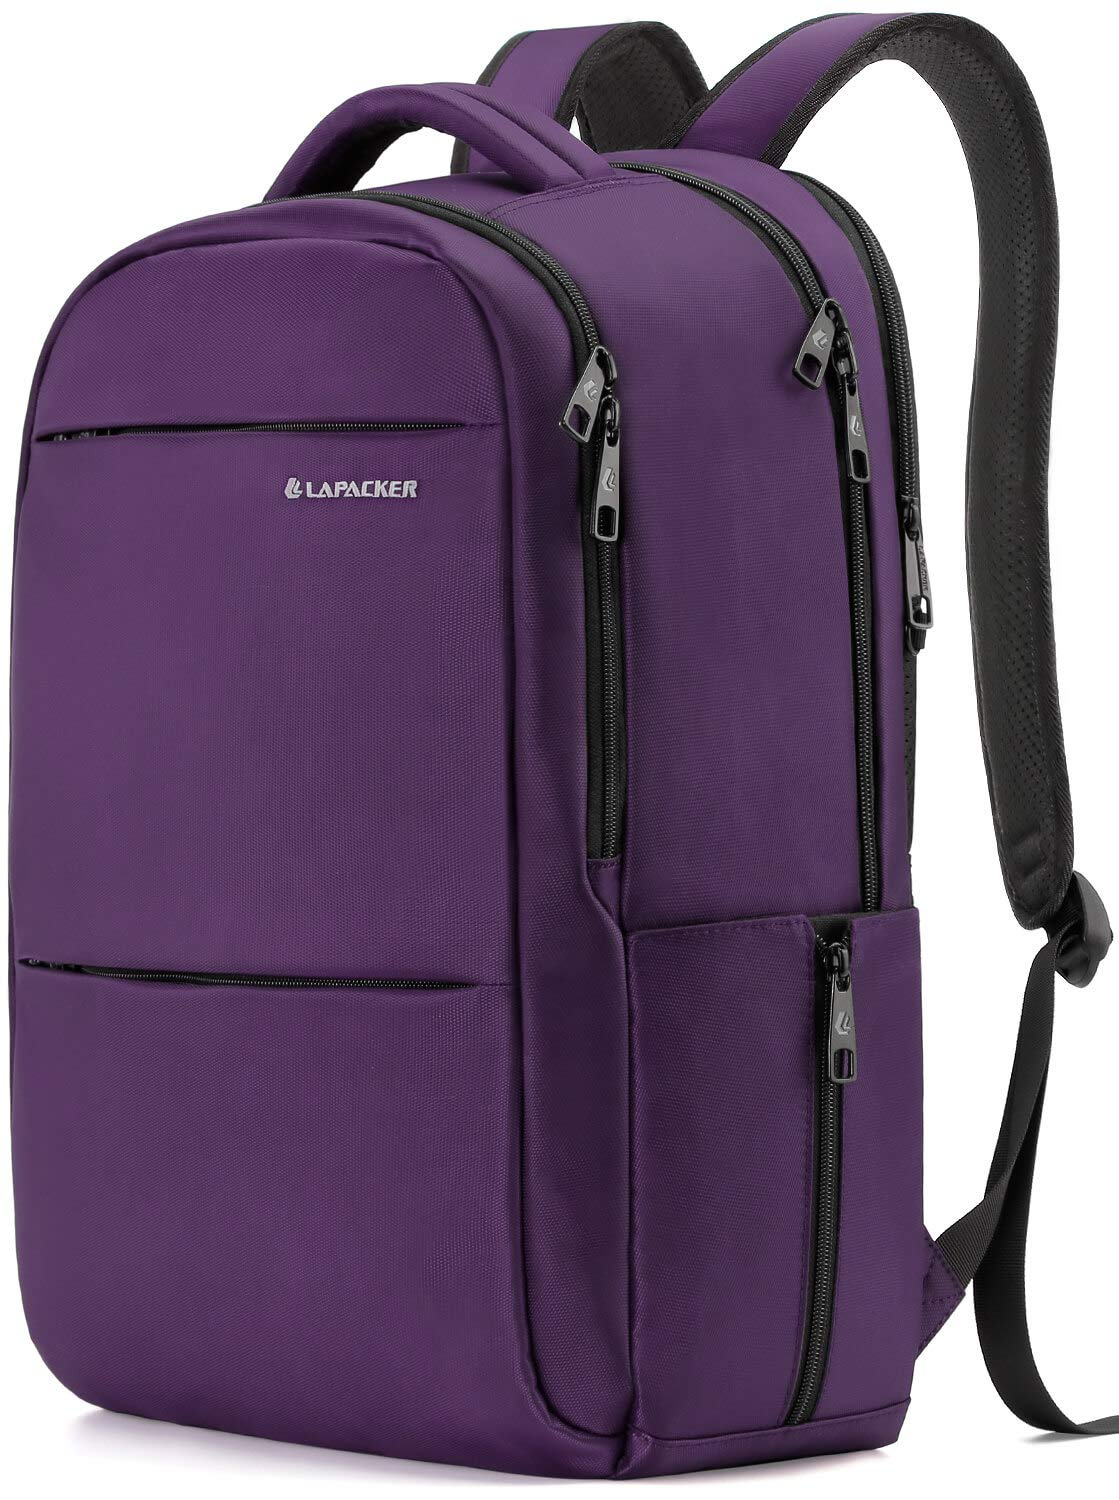 LAPACKER 15.6-17 inch Business Laptop Backpacks for Women Mens Water Resistant Laptop Travel Bag Lightweight College Students Notebook Computer Backpack - Purple by LAPACKER